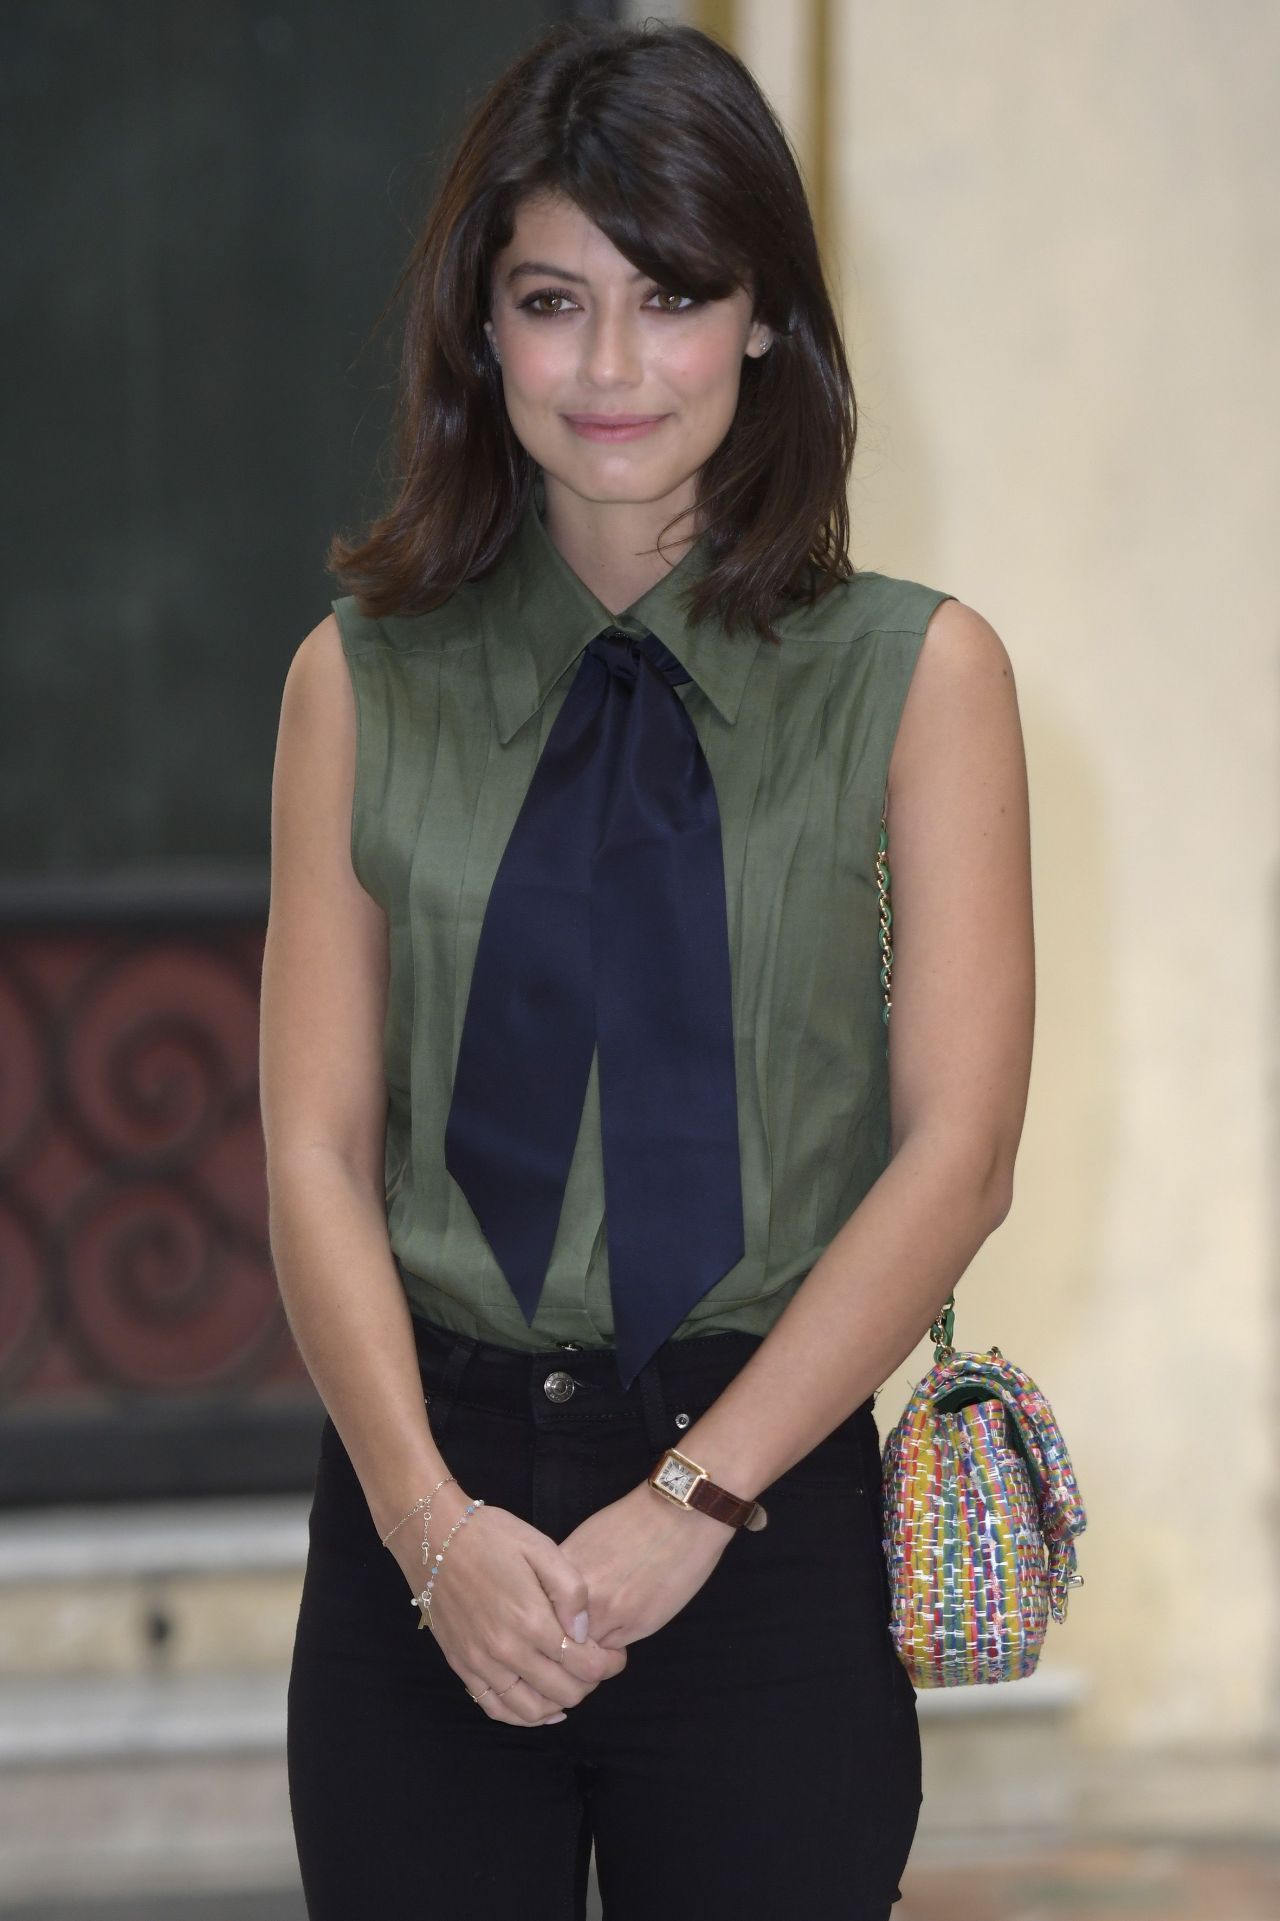 Alessandra Mastronardi L Allieva Photocall In Rome